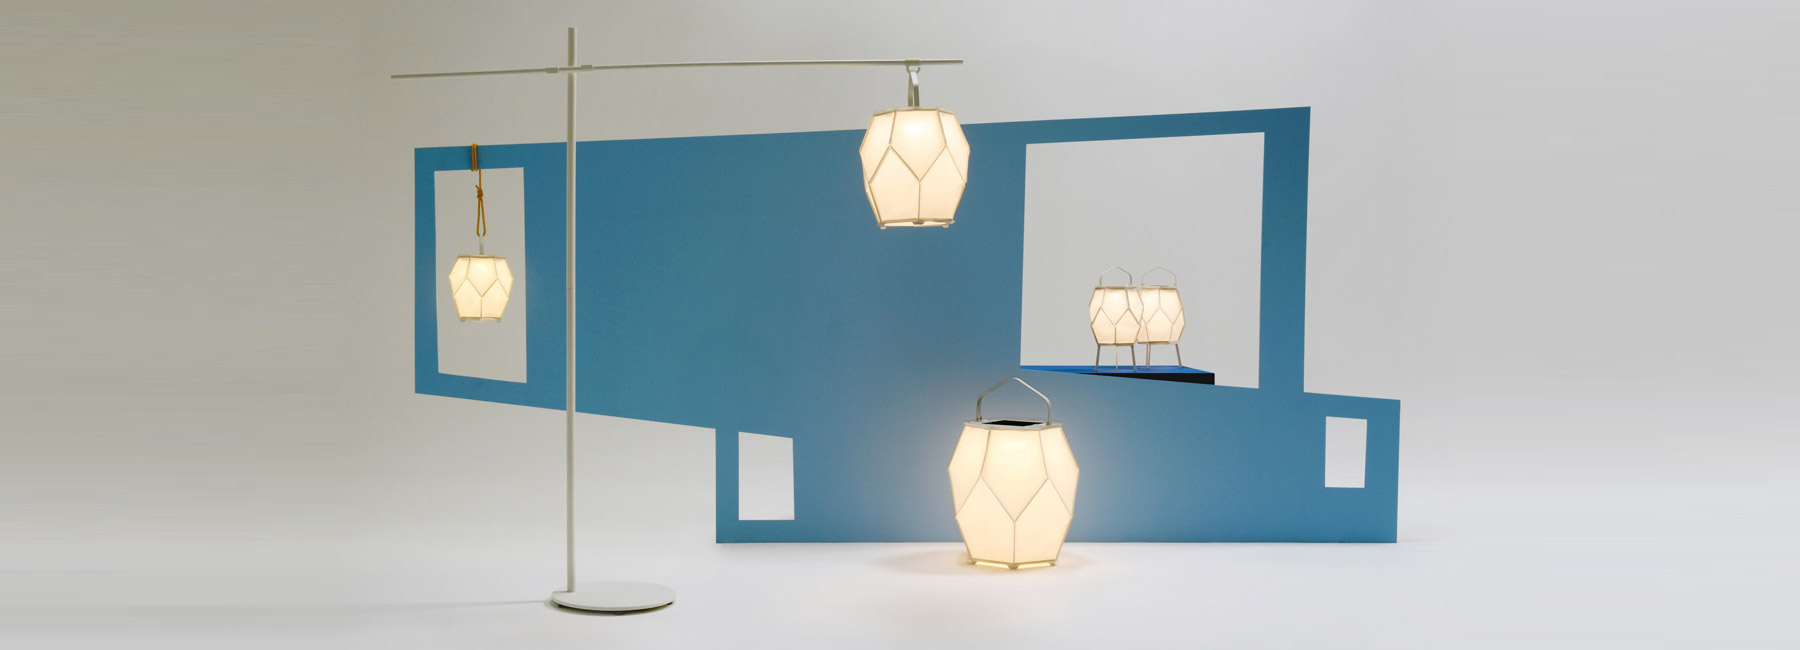 Lampe Design Normal Studio S Rechargeable Lamps For Maiori Use Sustainable